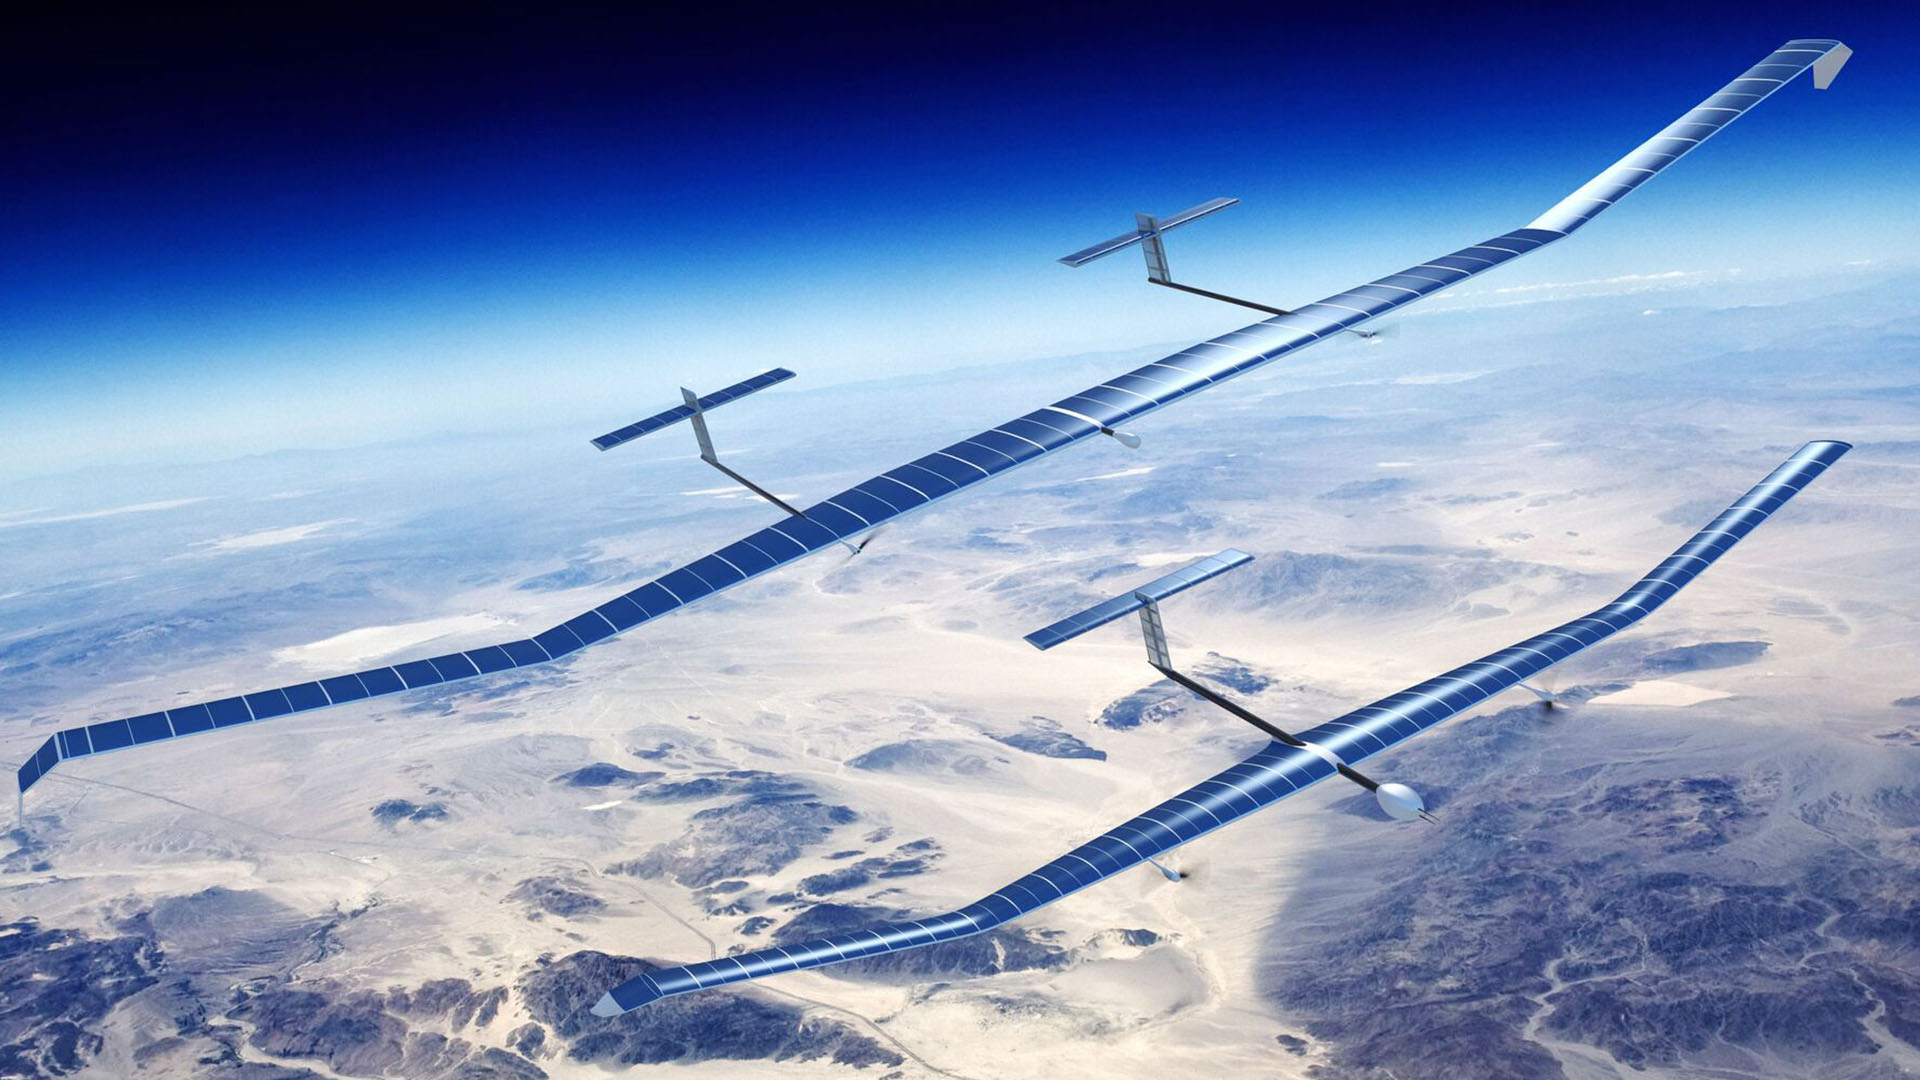 Airbus' Zephyr high altitude drone can fly for 14 days without landing